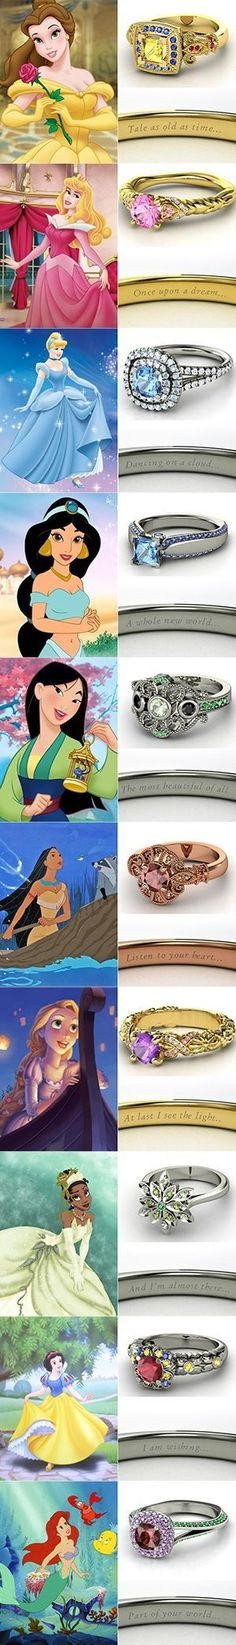 disney themed engagement ring (Rapunzel's the best! Belle's a bit too much)